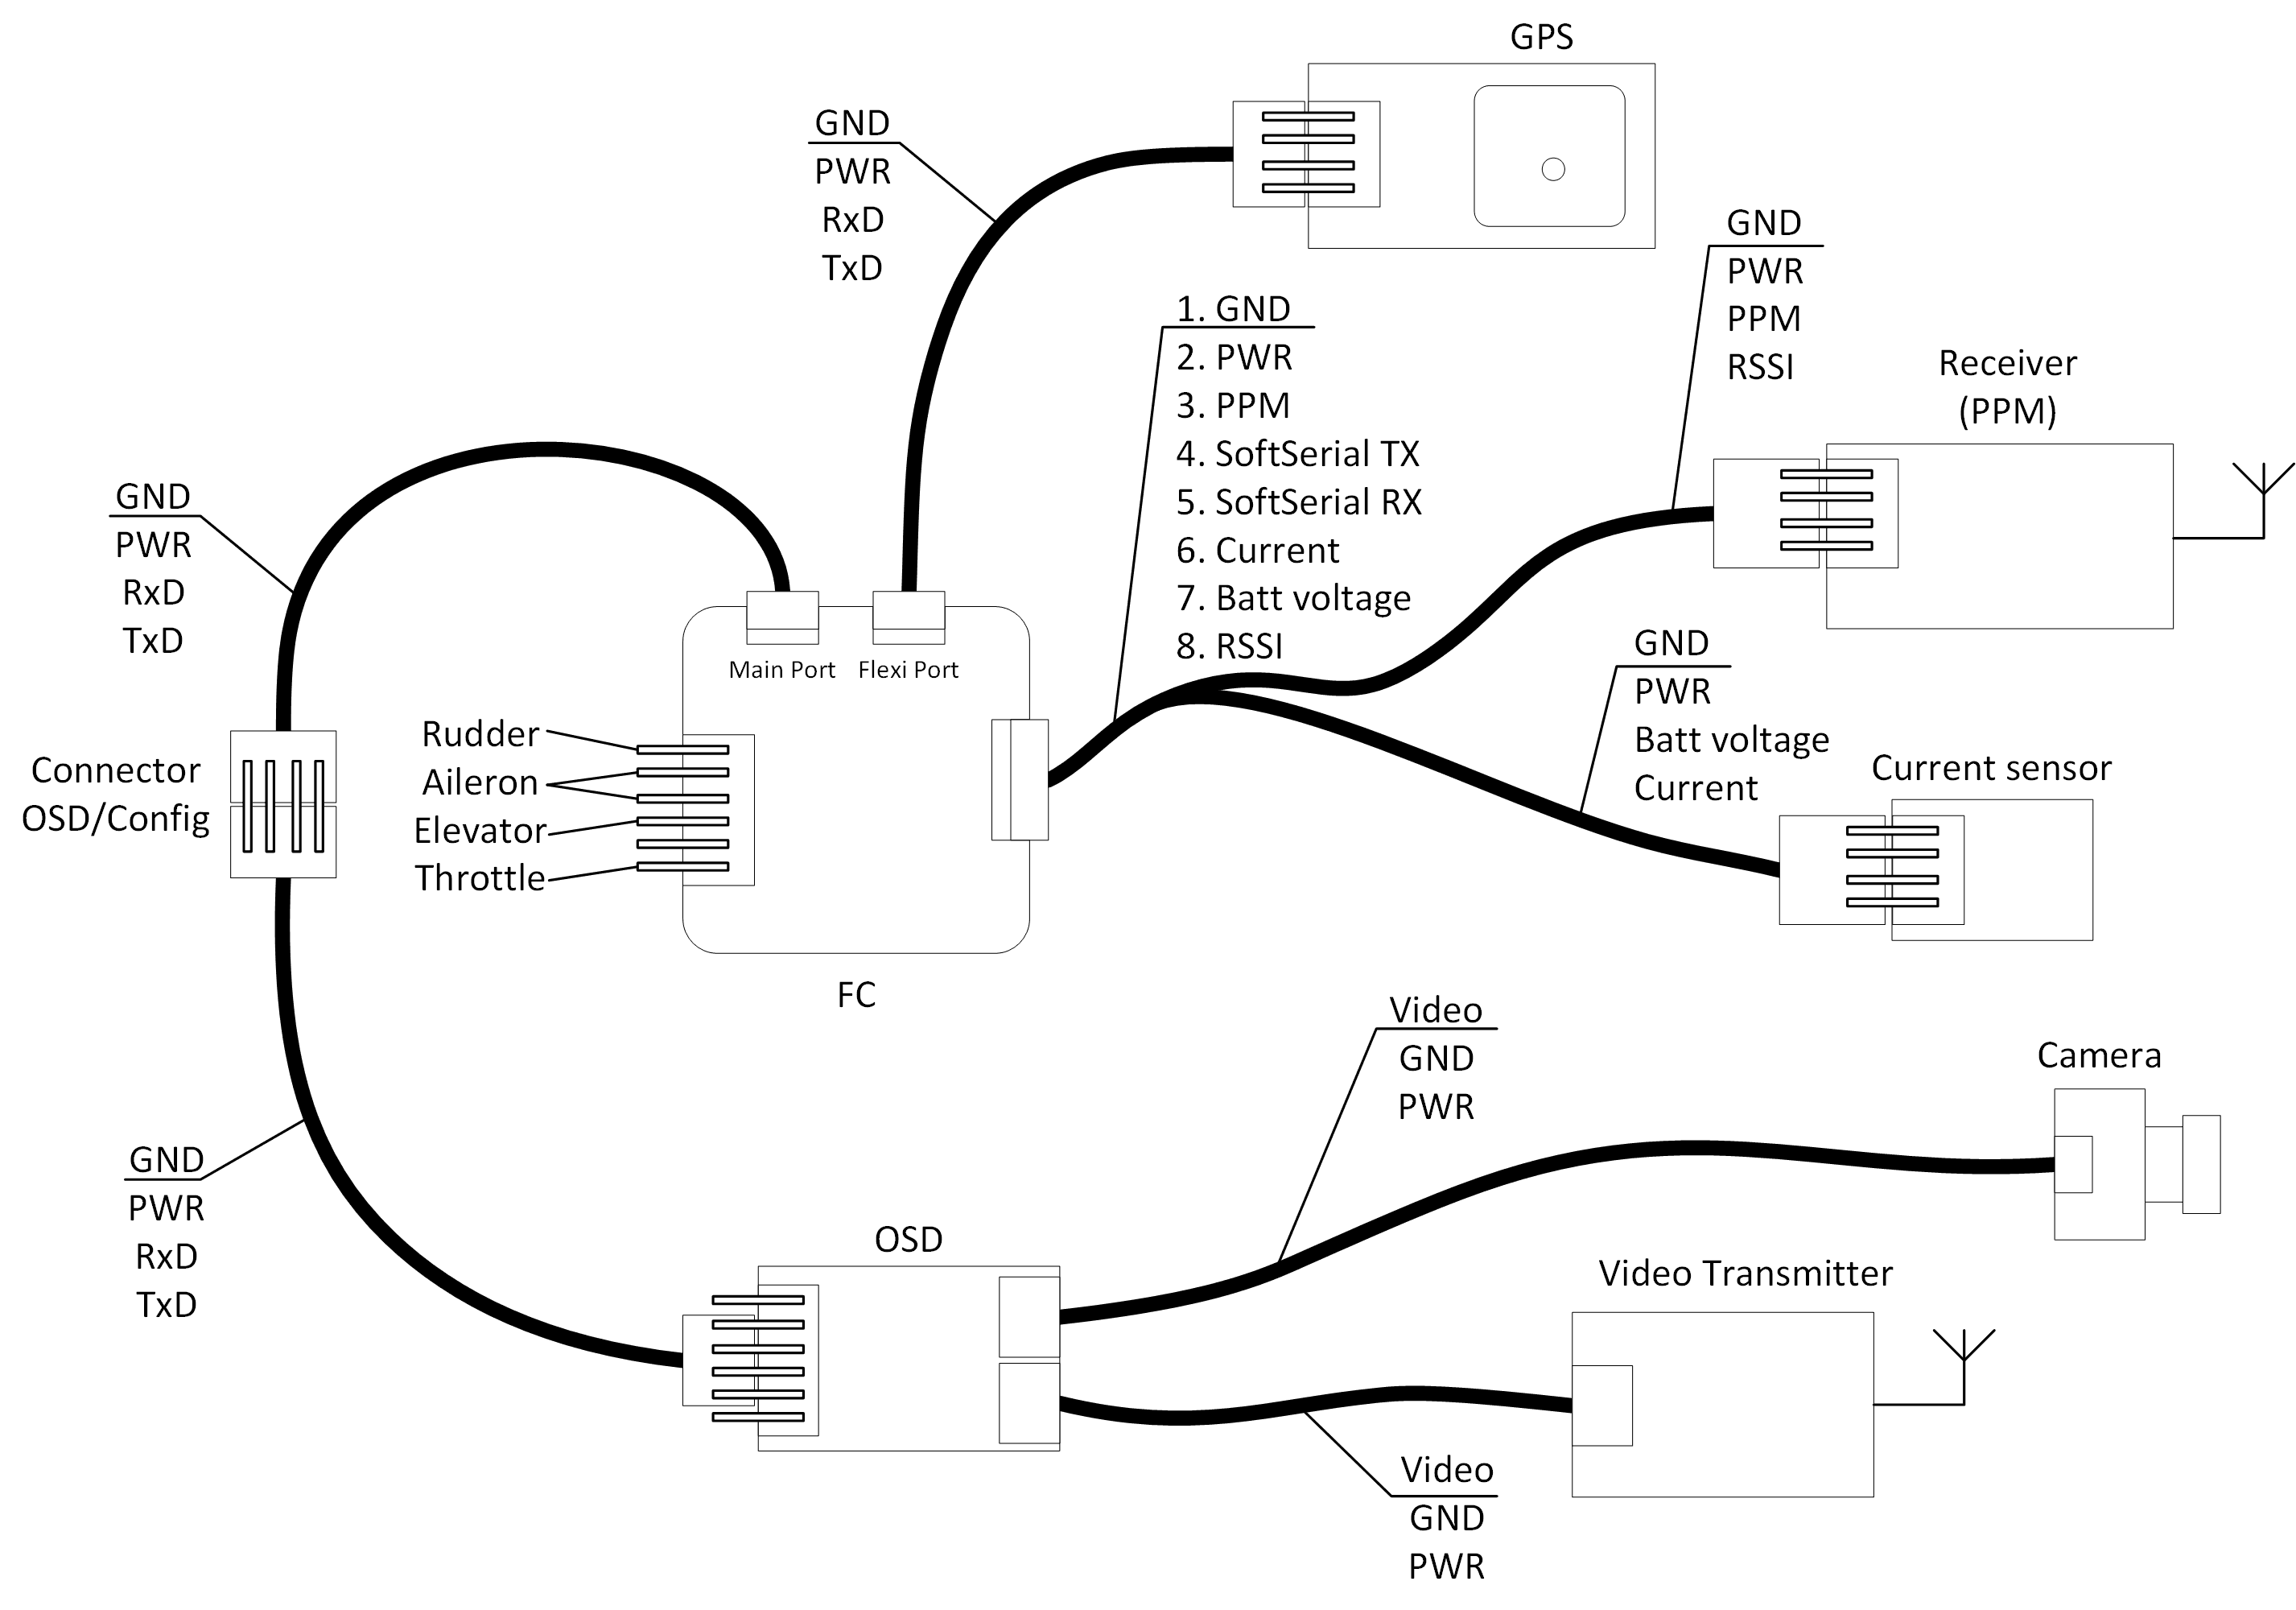 openpilot ppm output wiring diagram - 28 images